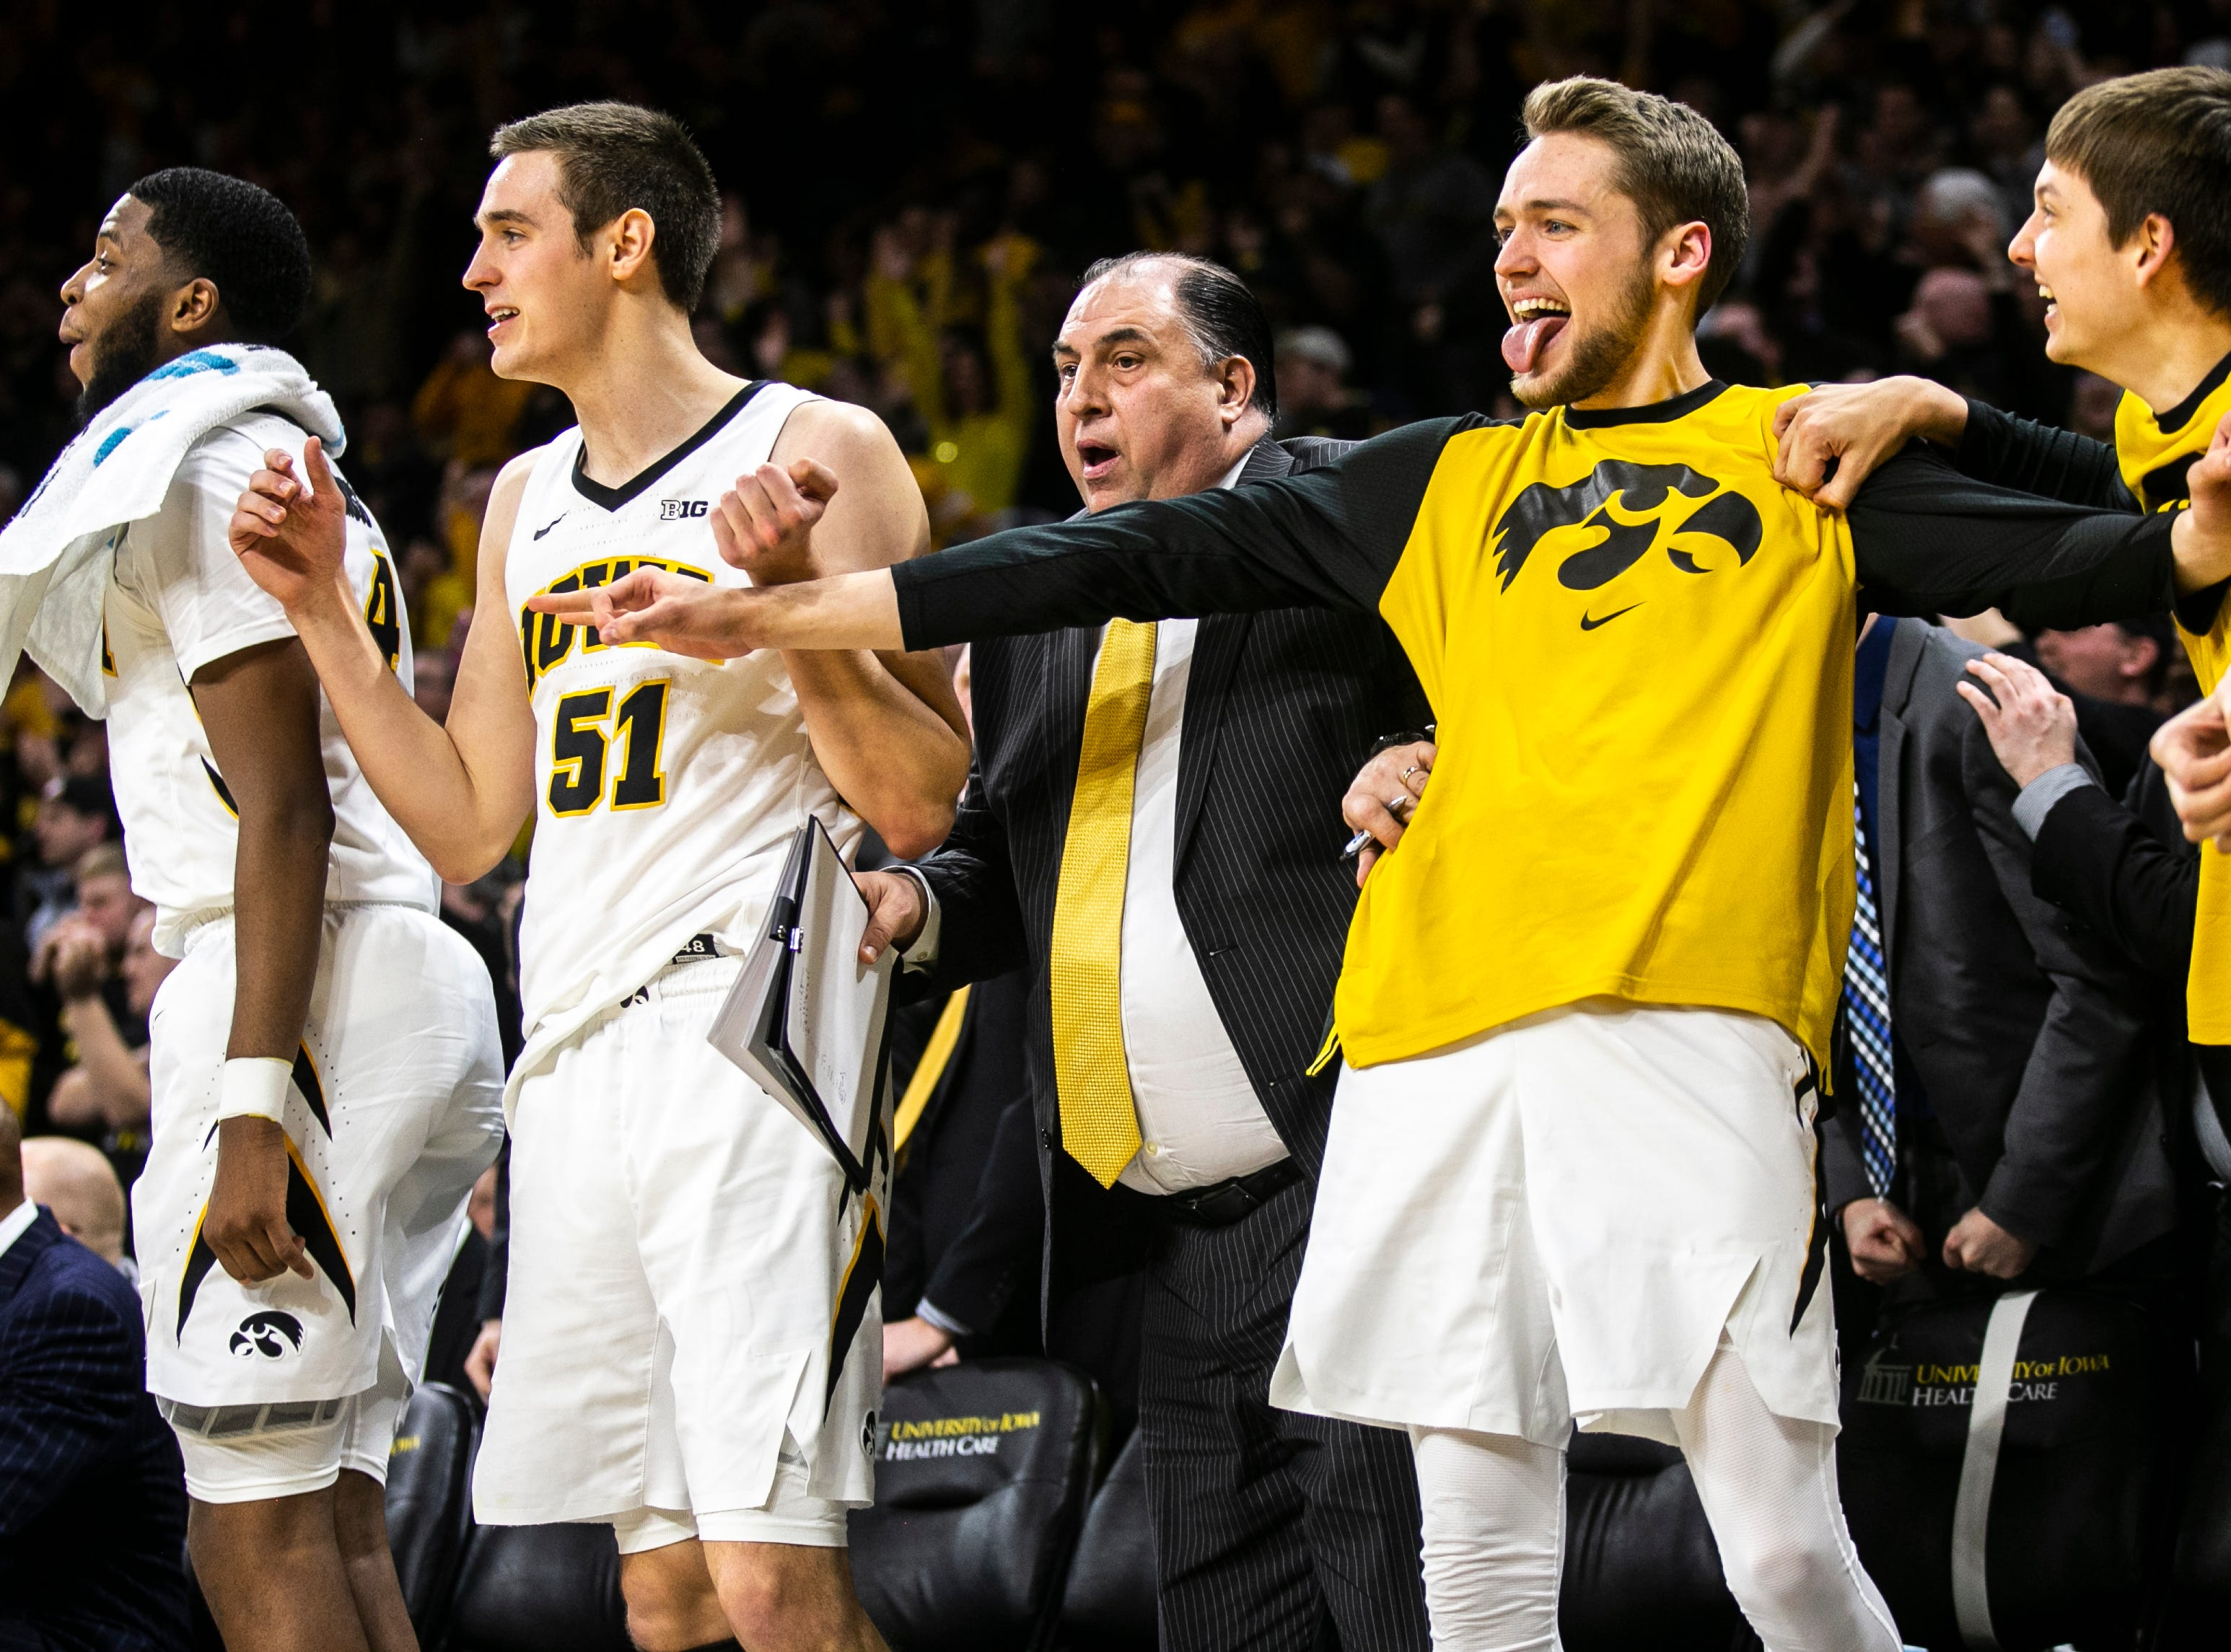 Iowa forward Riley Till celebrates with teammates Isaiah Moss, far left, Nicholas Baer, and Austin Ash, far right,on the bench during a NCAA Big Ten Conference men's basketball game on Friday, Feb. 1, 2019, at Carver-Hawkeye Arena in Iowa City, Iowa.